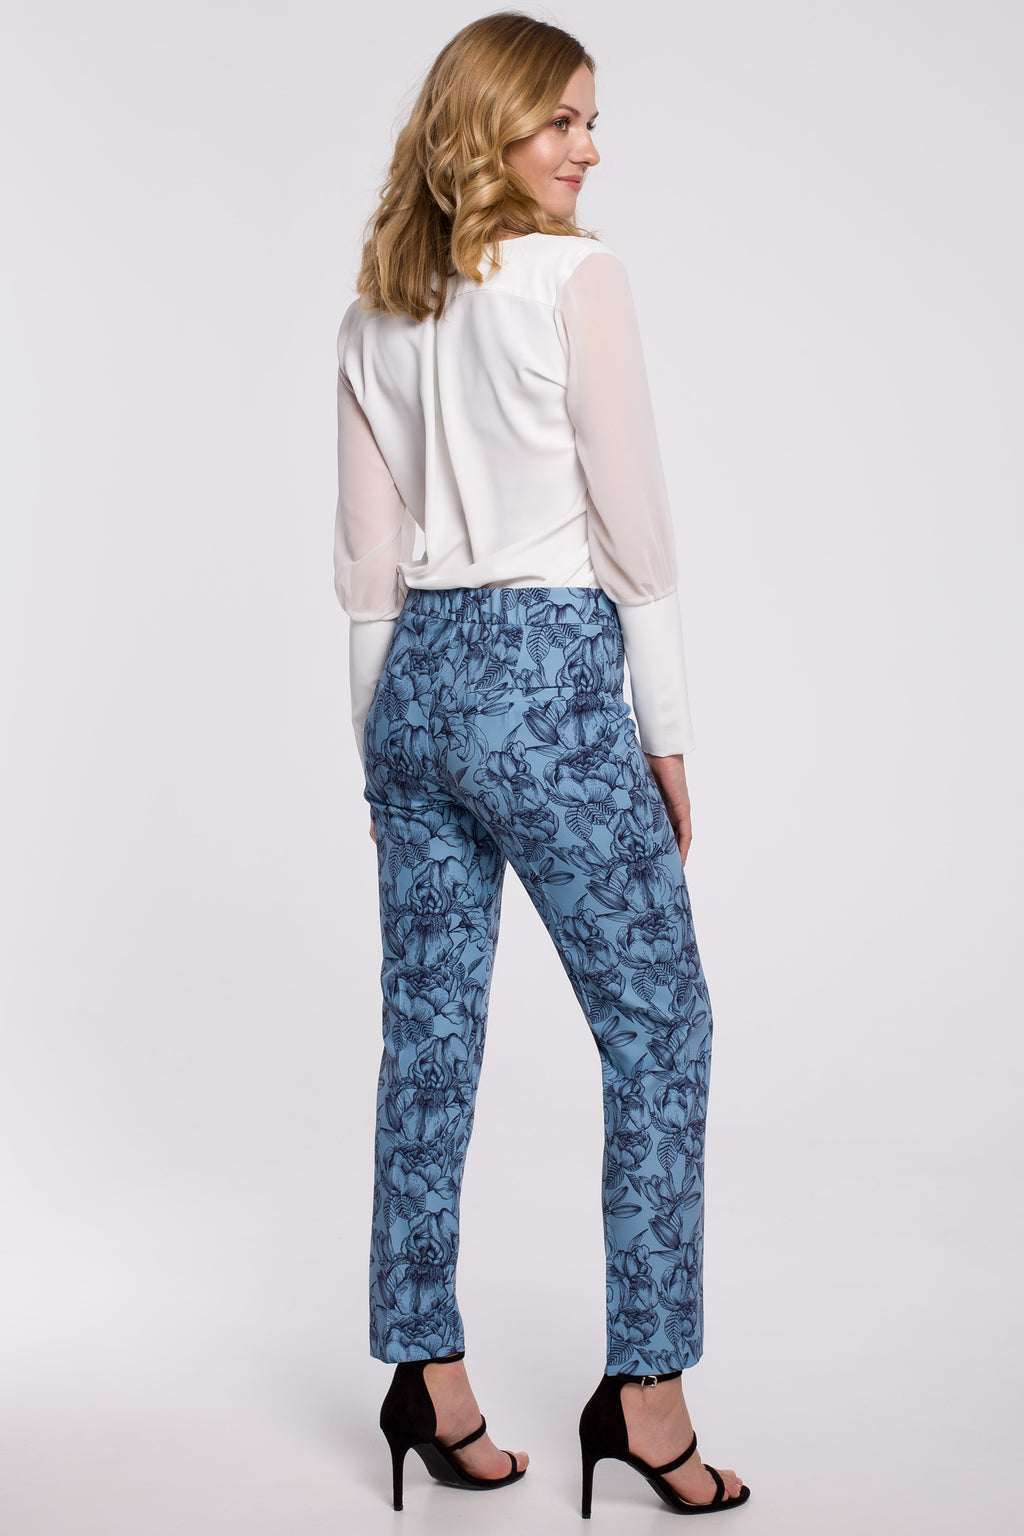 Light Blue Floral Print Slim Fit Trousers - So Chic Boutique